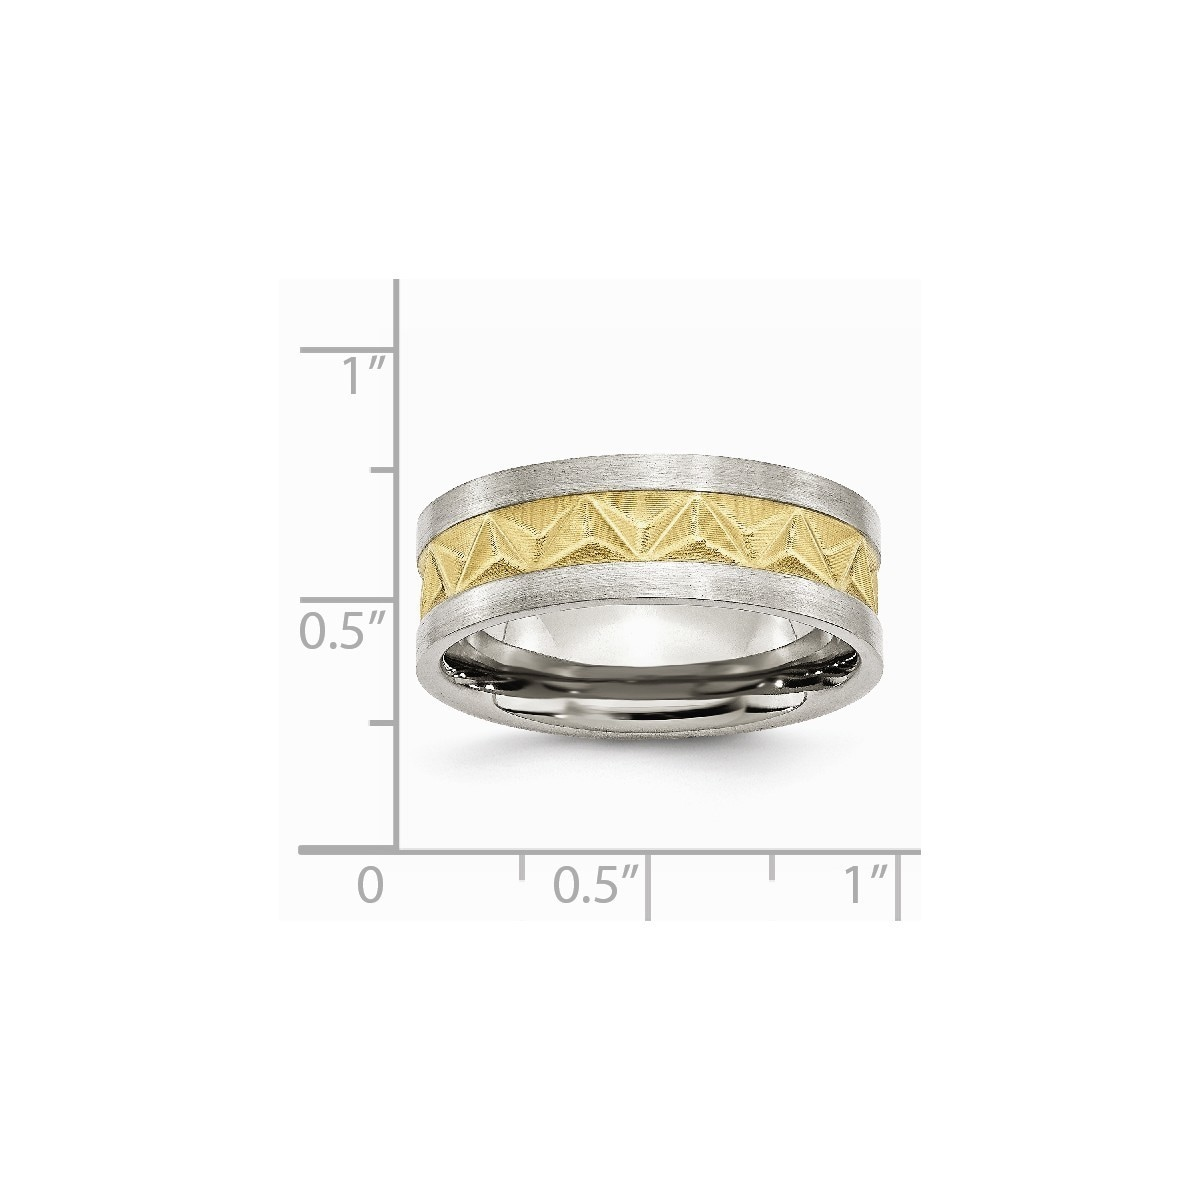 Diamond Cut Band 316L Stainless Steel Ring Sizes 7-13 WEDDING Engagement Band